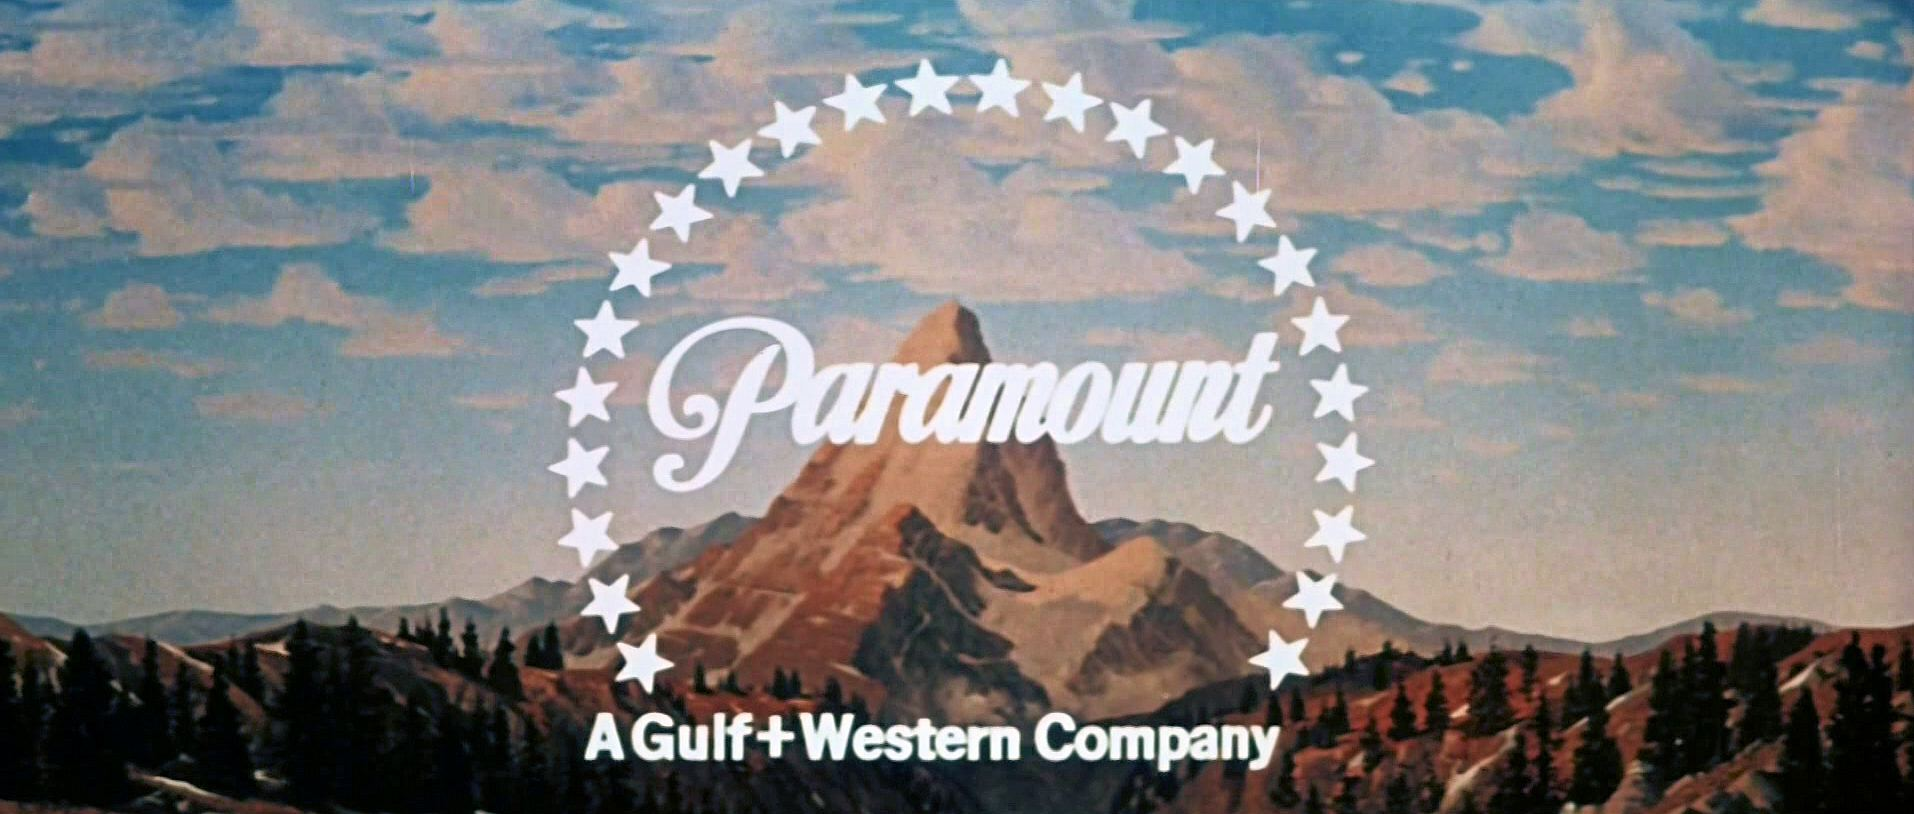 Main title from Oh! What a Lovely War (1969) (1).  Paramount a Gulf + Western Company